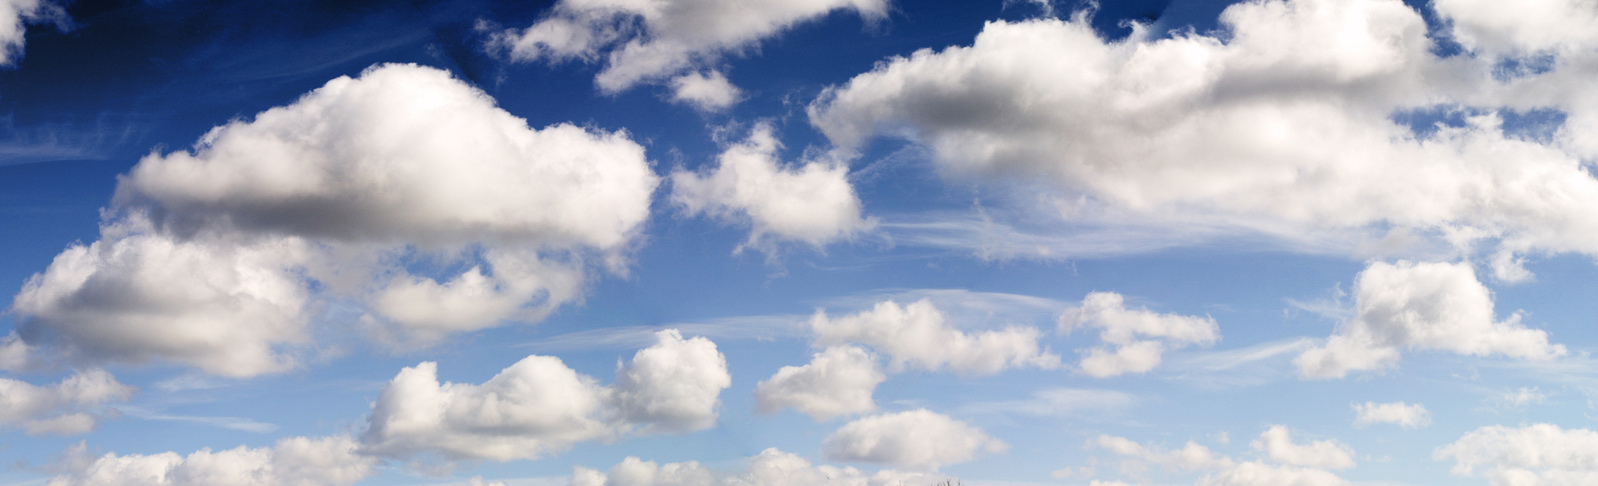 sky-panorama-with-clouds-1479164-1598x485 Philippe Ramakers freeimages